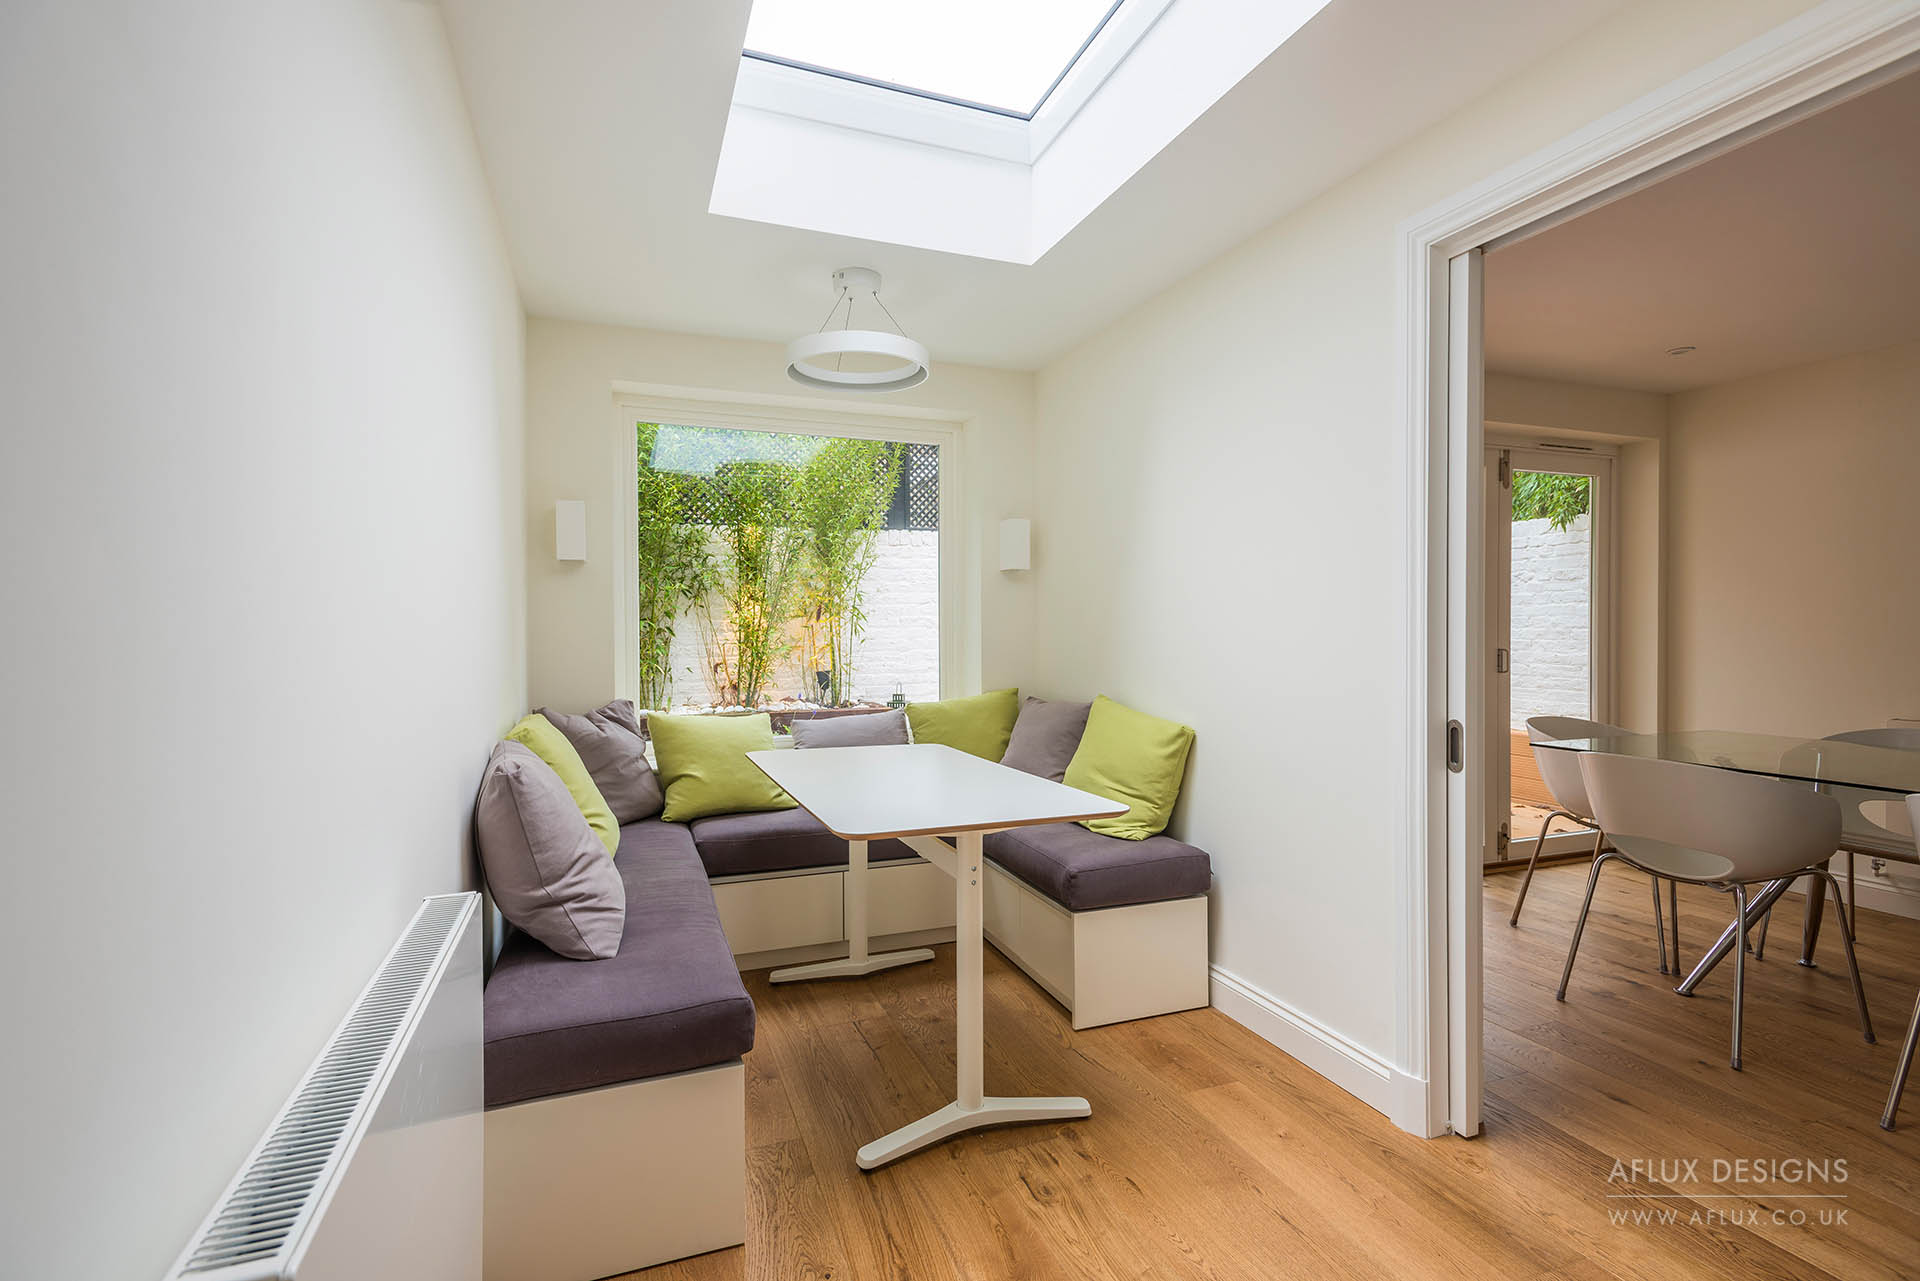 St Johns Wood - LONDON NW8Fully refurbishing, for a 'buy to let' investor, a tired mews house in St Johns Wood. Involving a rear extension and small patio to create a semi open plan ground floor with tidy and neutral finishes to the first floor.